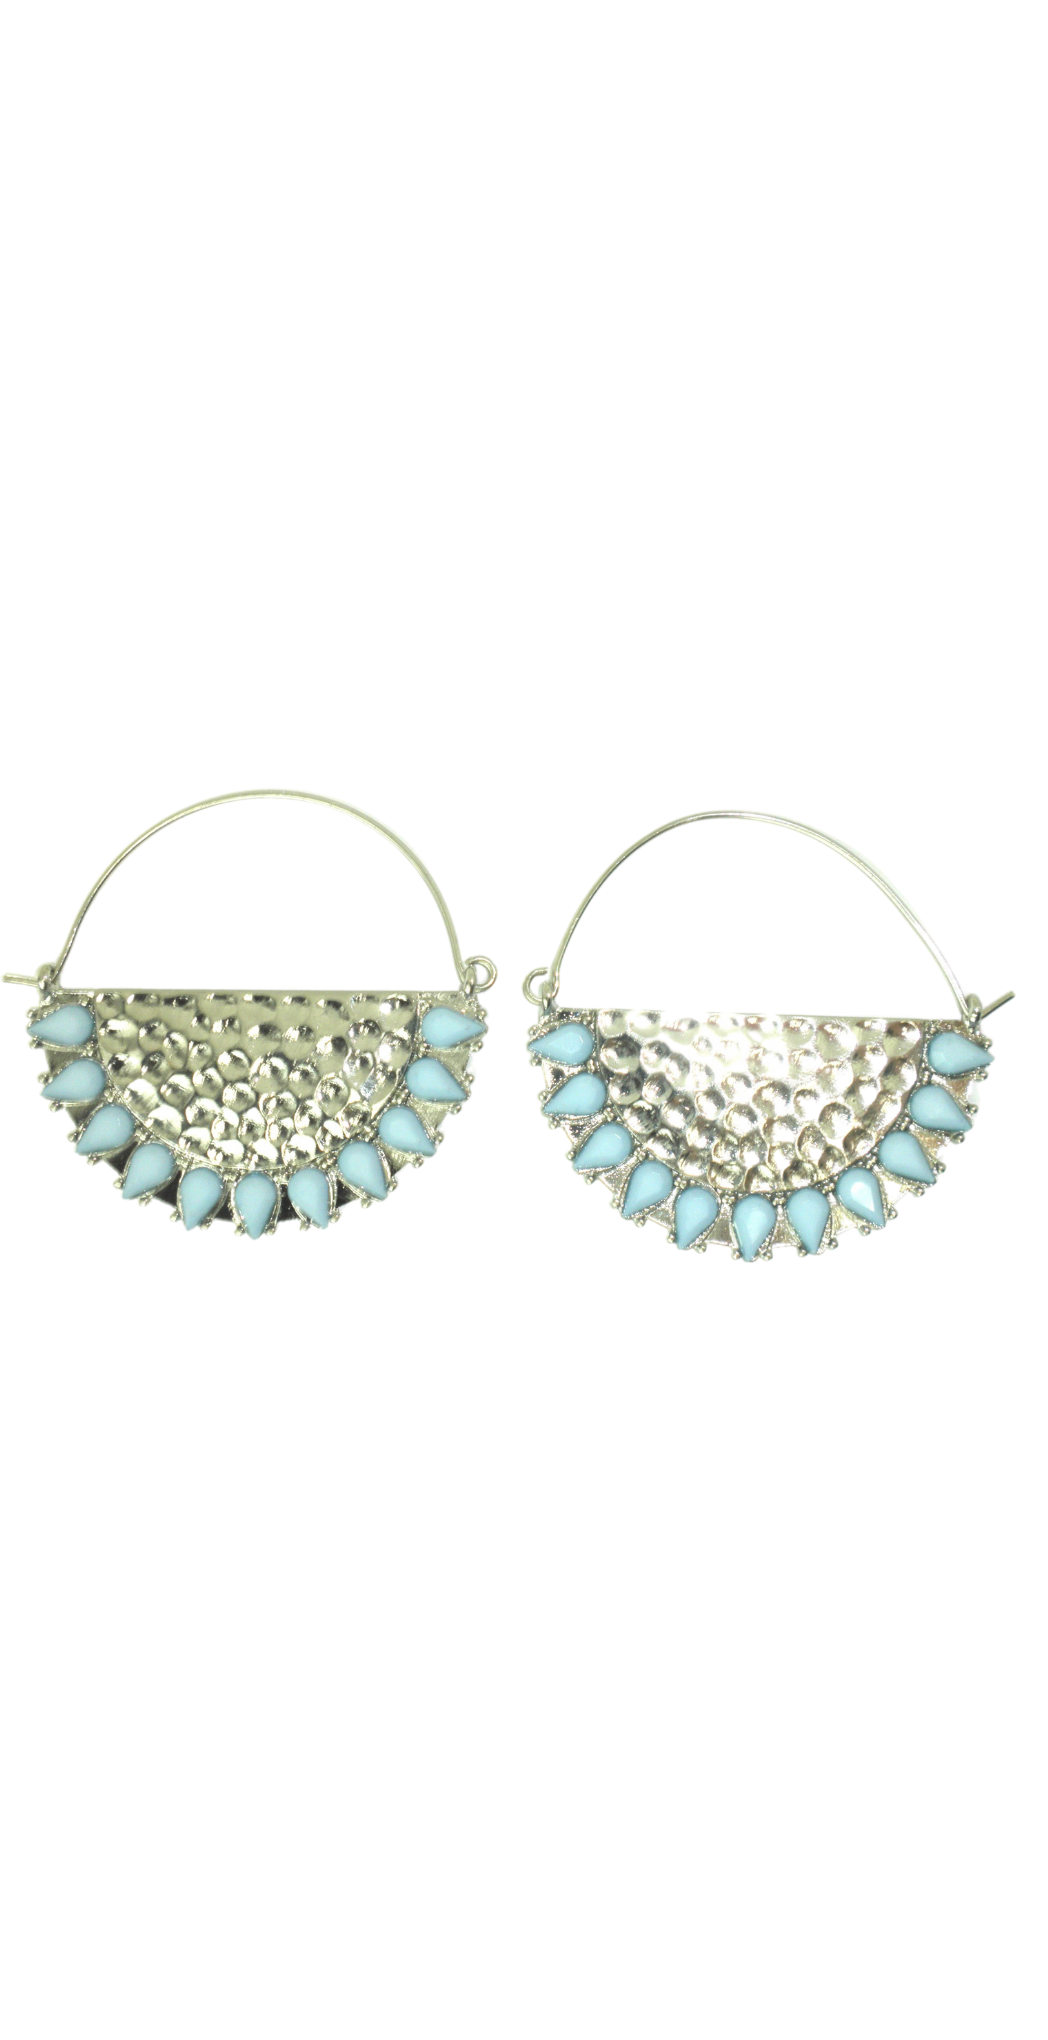 Silver and Light Blue Hoop Earrings with Silver Semi Circle - The Fashion Foundation - {{ discount designer}}